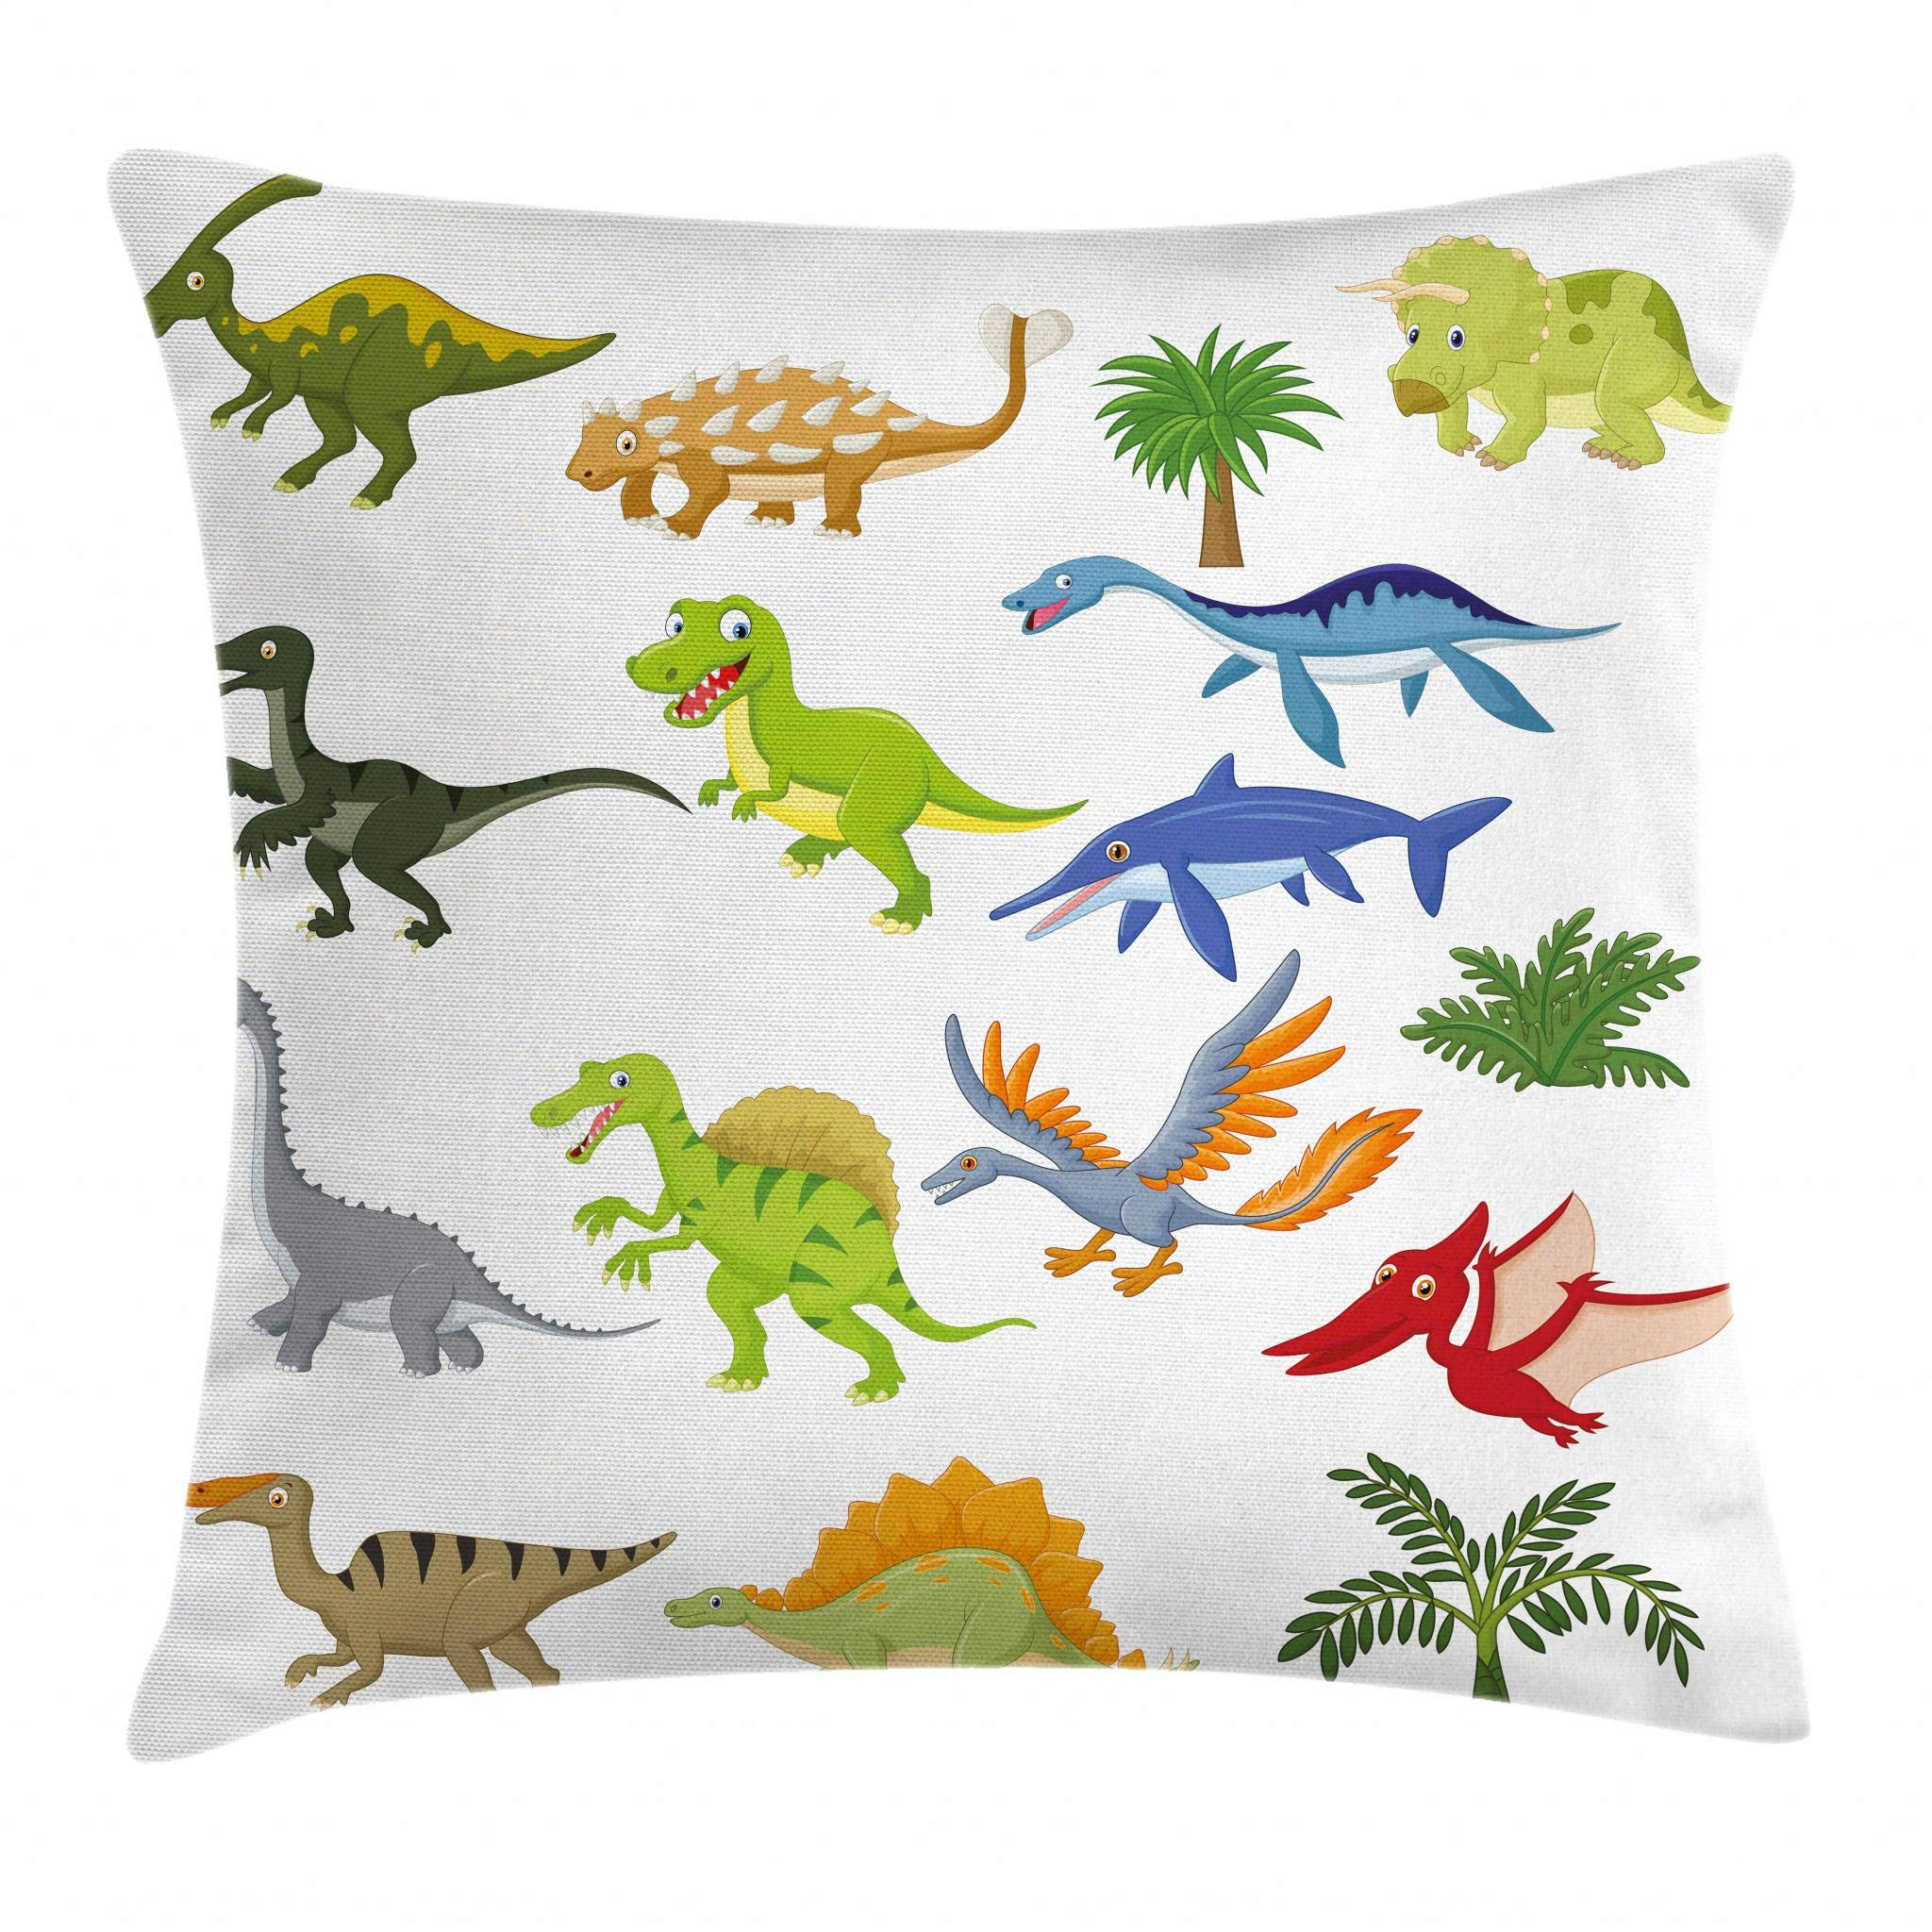 Lunarable Boy's Room Throw Pillow Cushion Cover, Cartoon Dinosaur Images with Other Elements from Jurassic Fauna Cute Creatures, Decorative Square Accent Pillow Case, 16 X 16 Inches, Multicolor